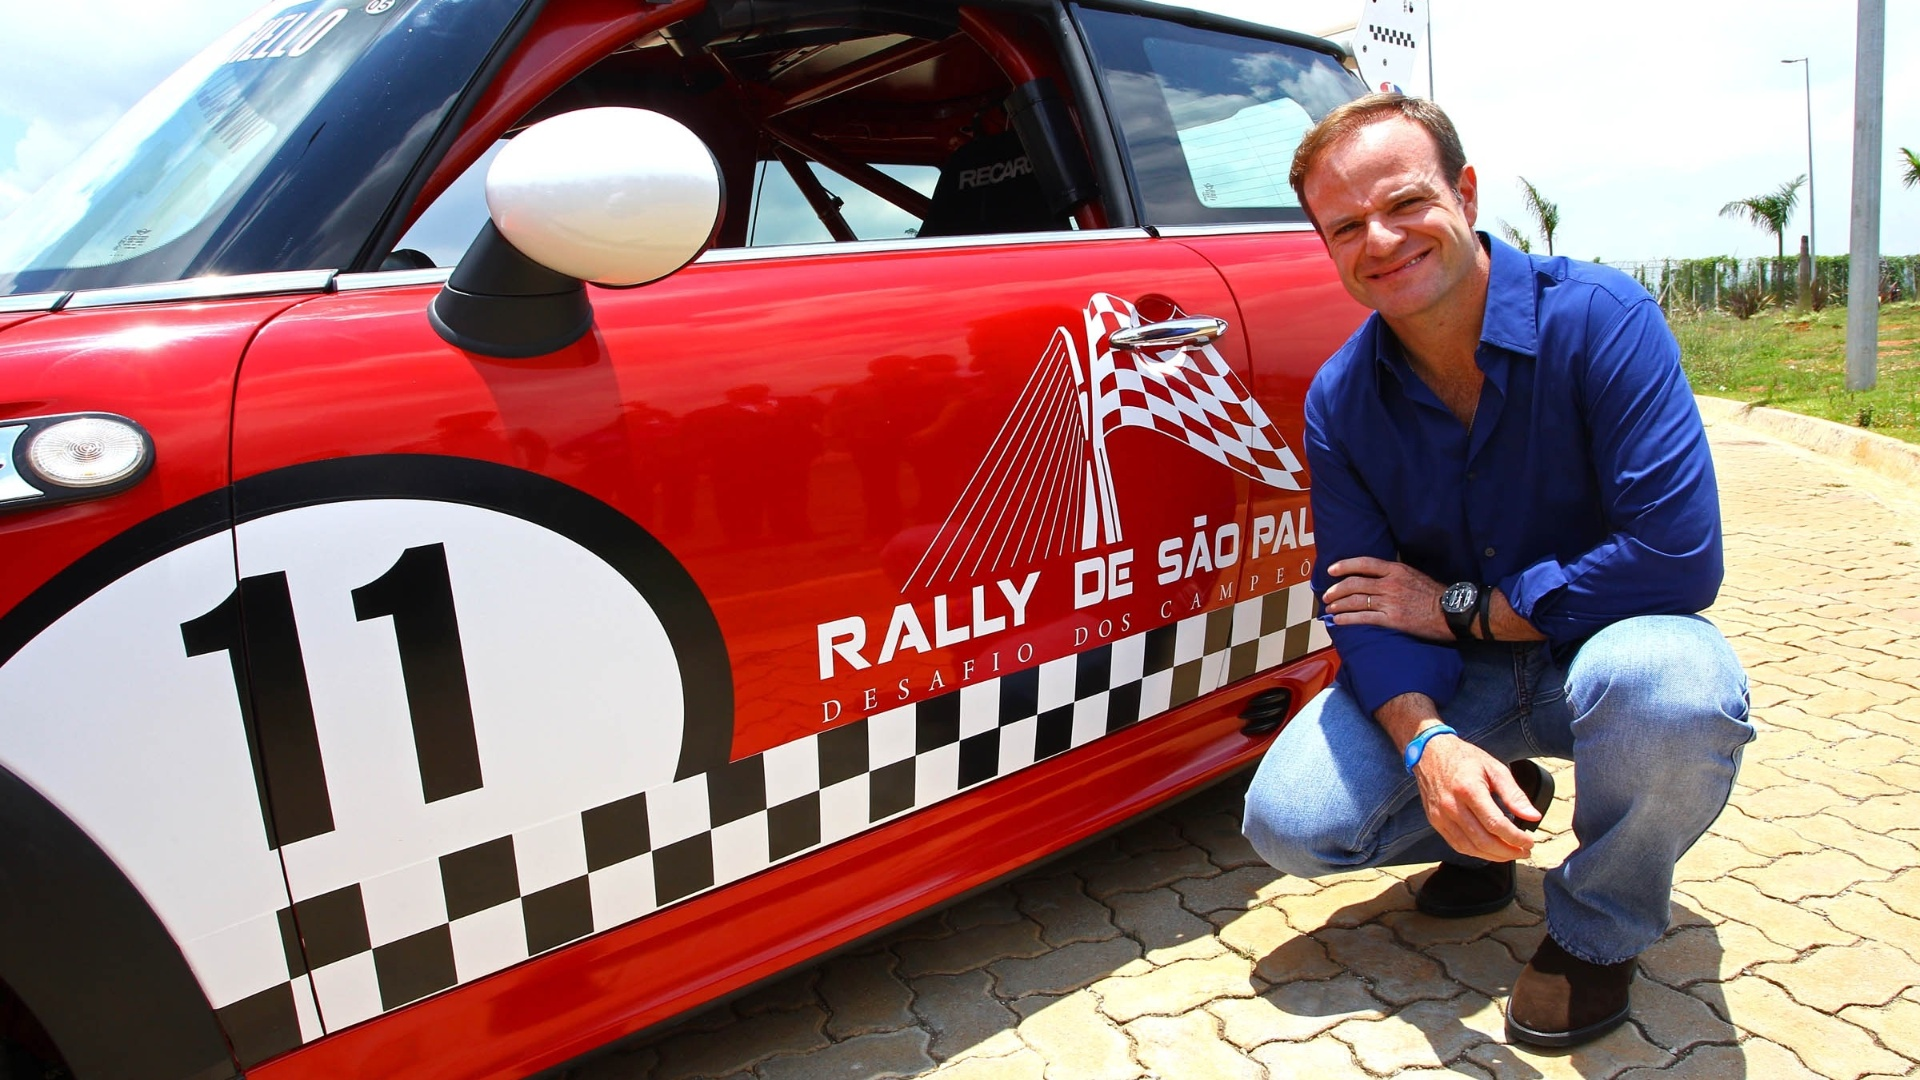 Rubens Barrichello posa com o carro que ser usado no Rally de So Paulo